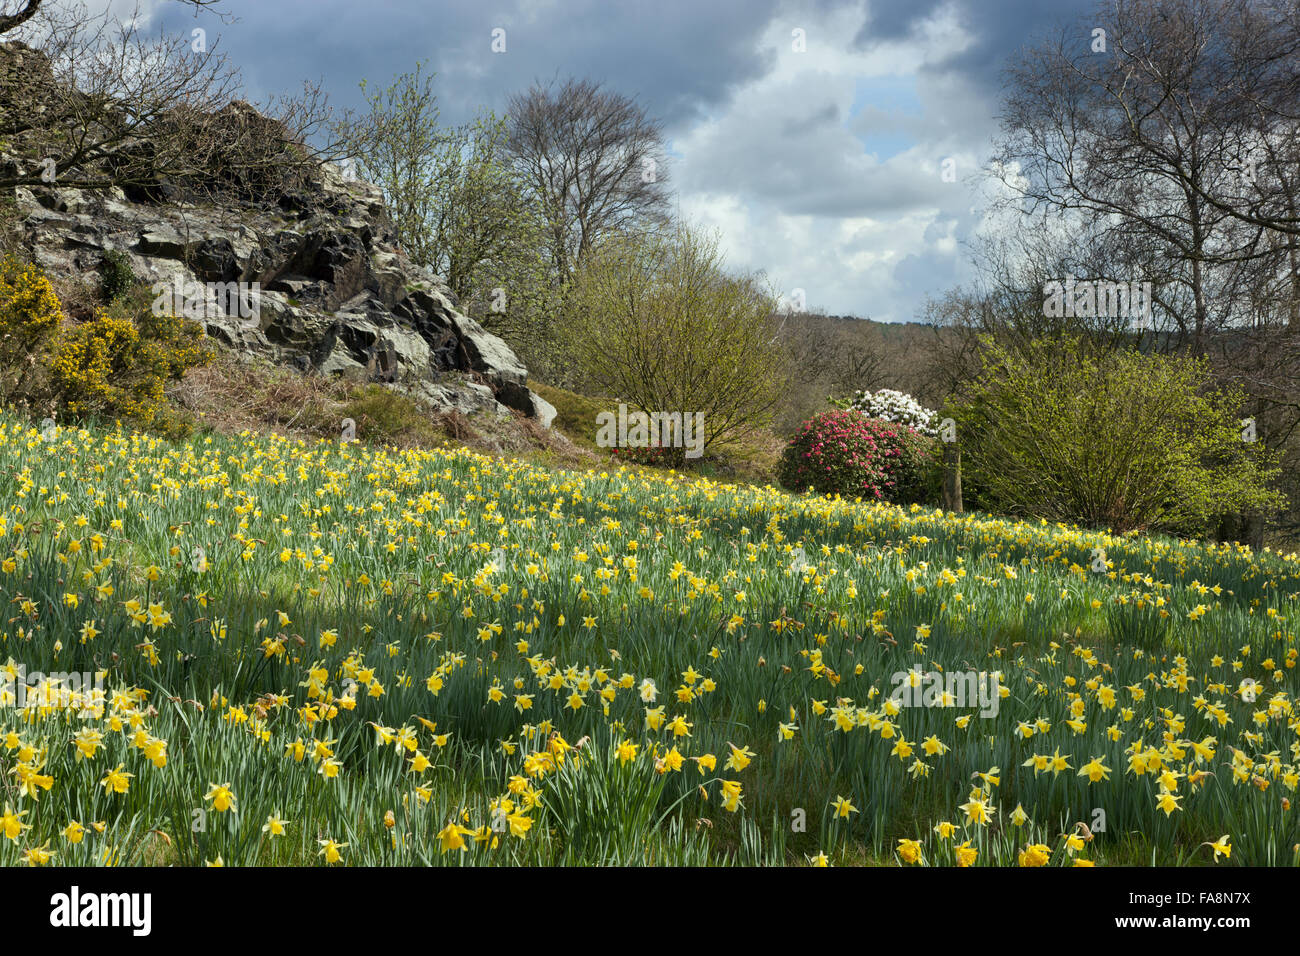 L'éperon rocheux à Stoneywell, Leicestershire. Photo Stock